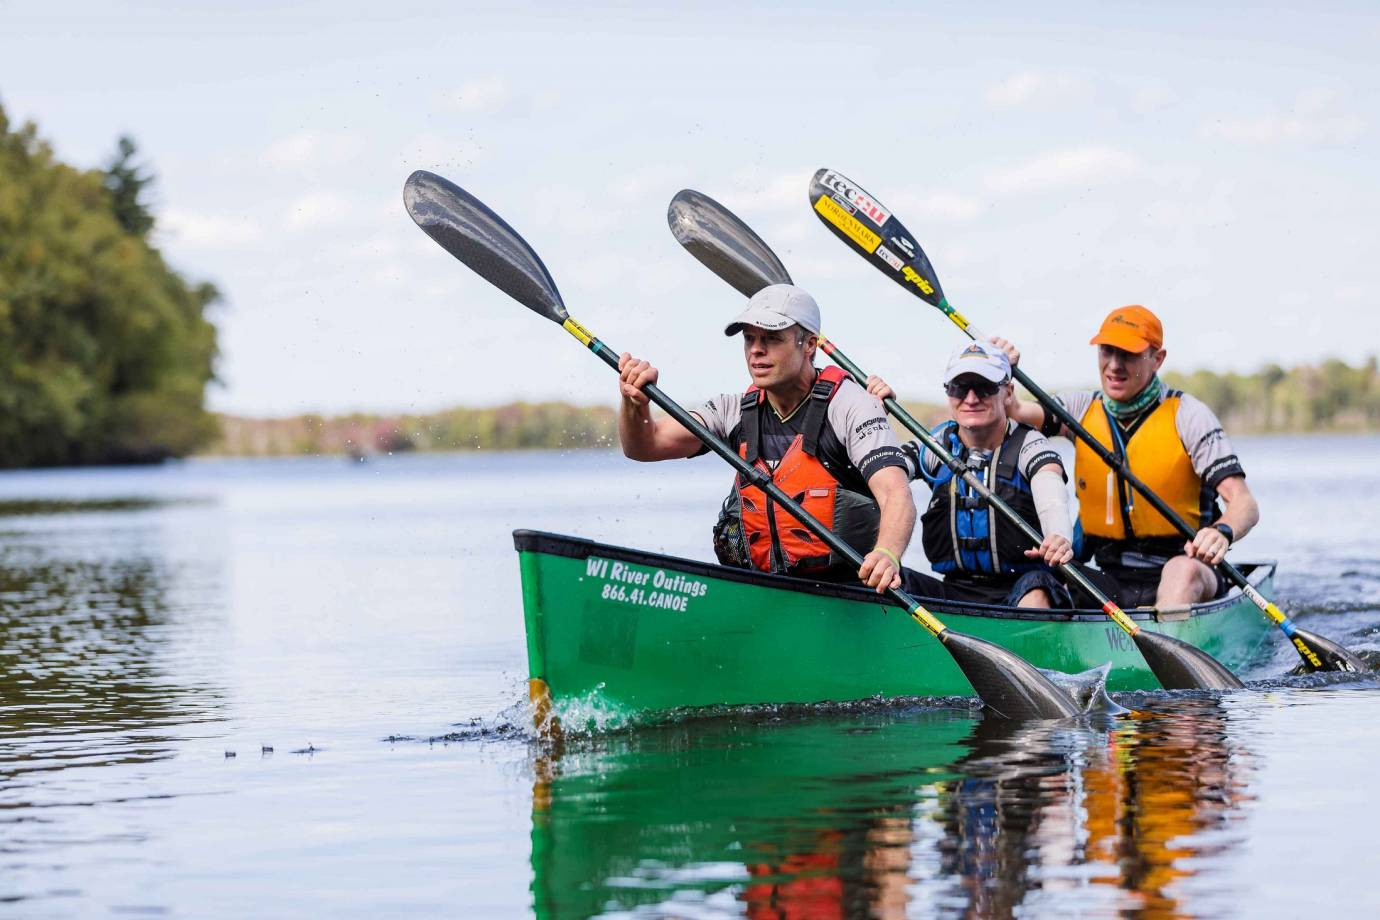 Team WEDALI paddles 25+ miles of open water during an early section in the USARA National Championship race